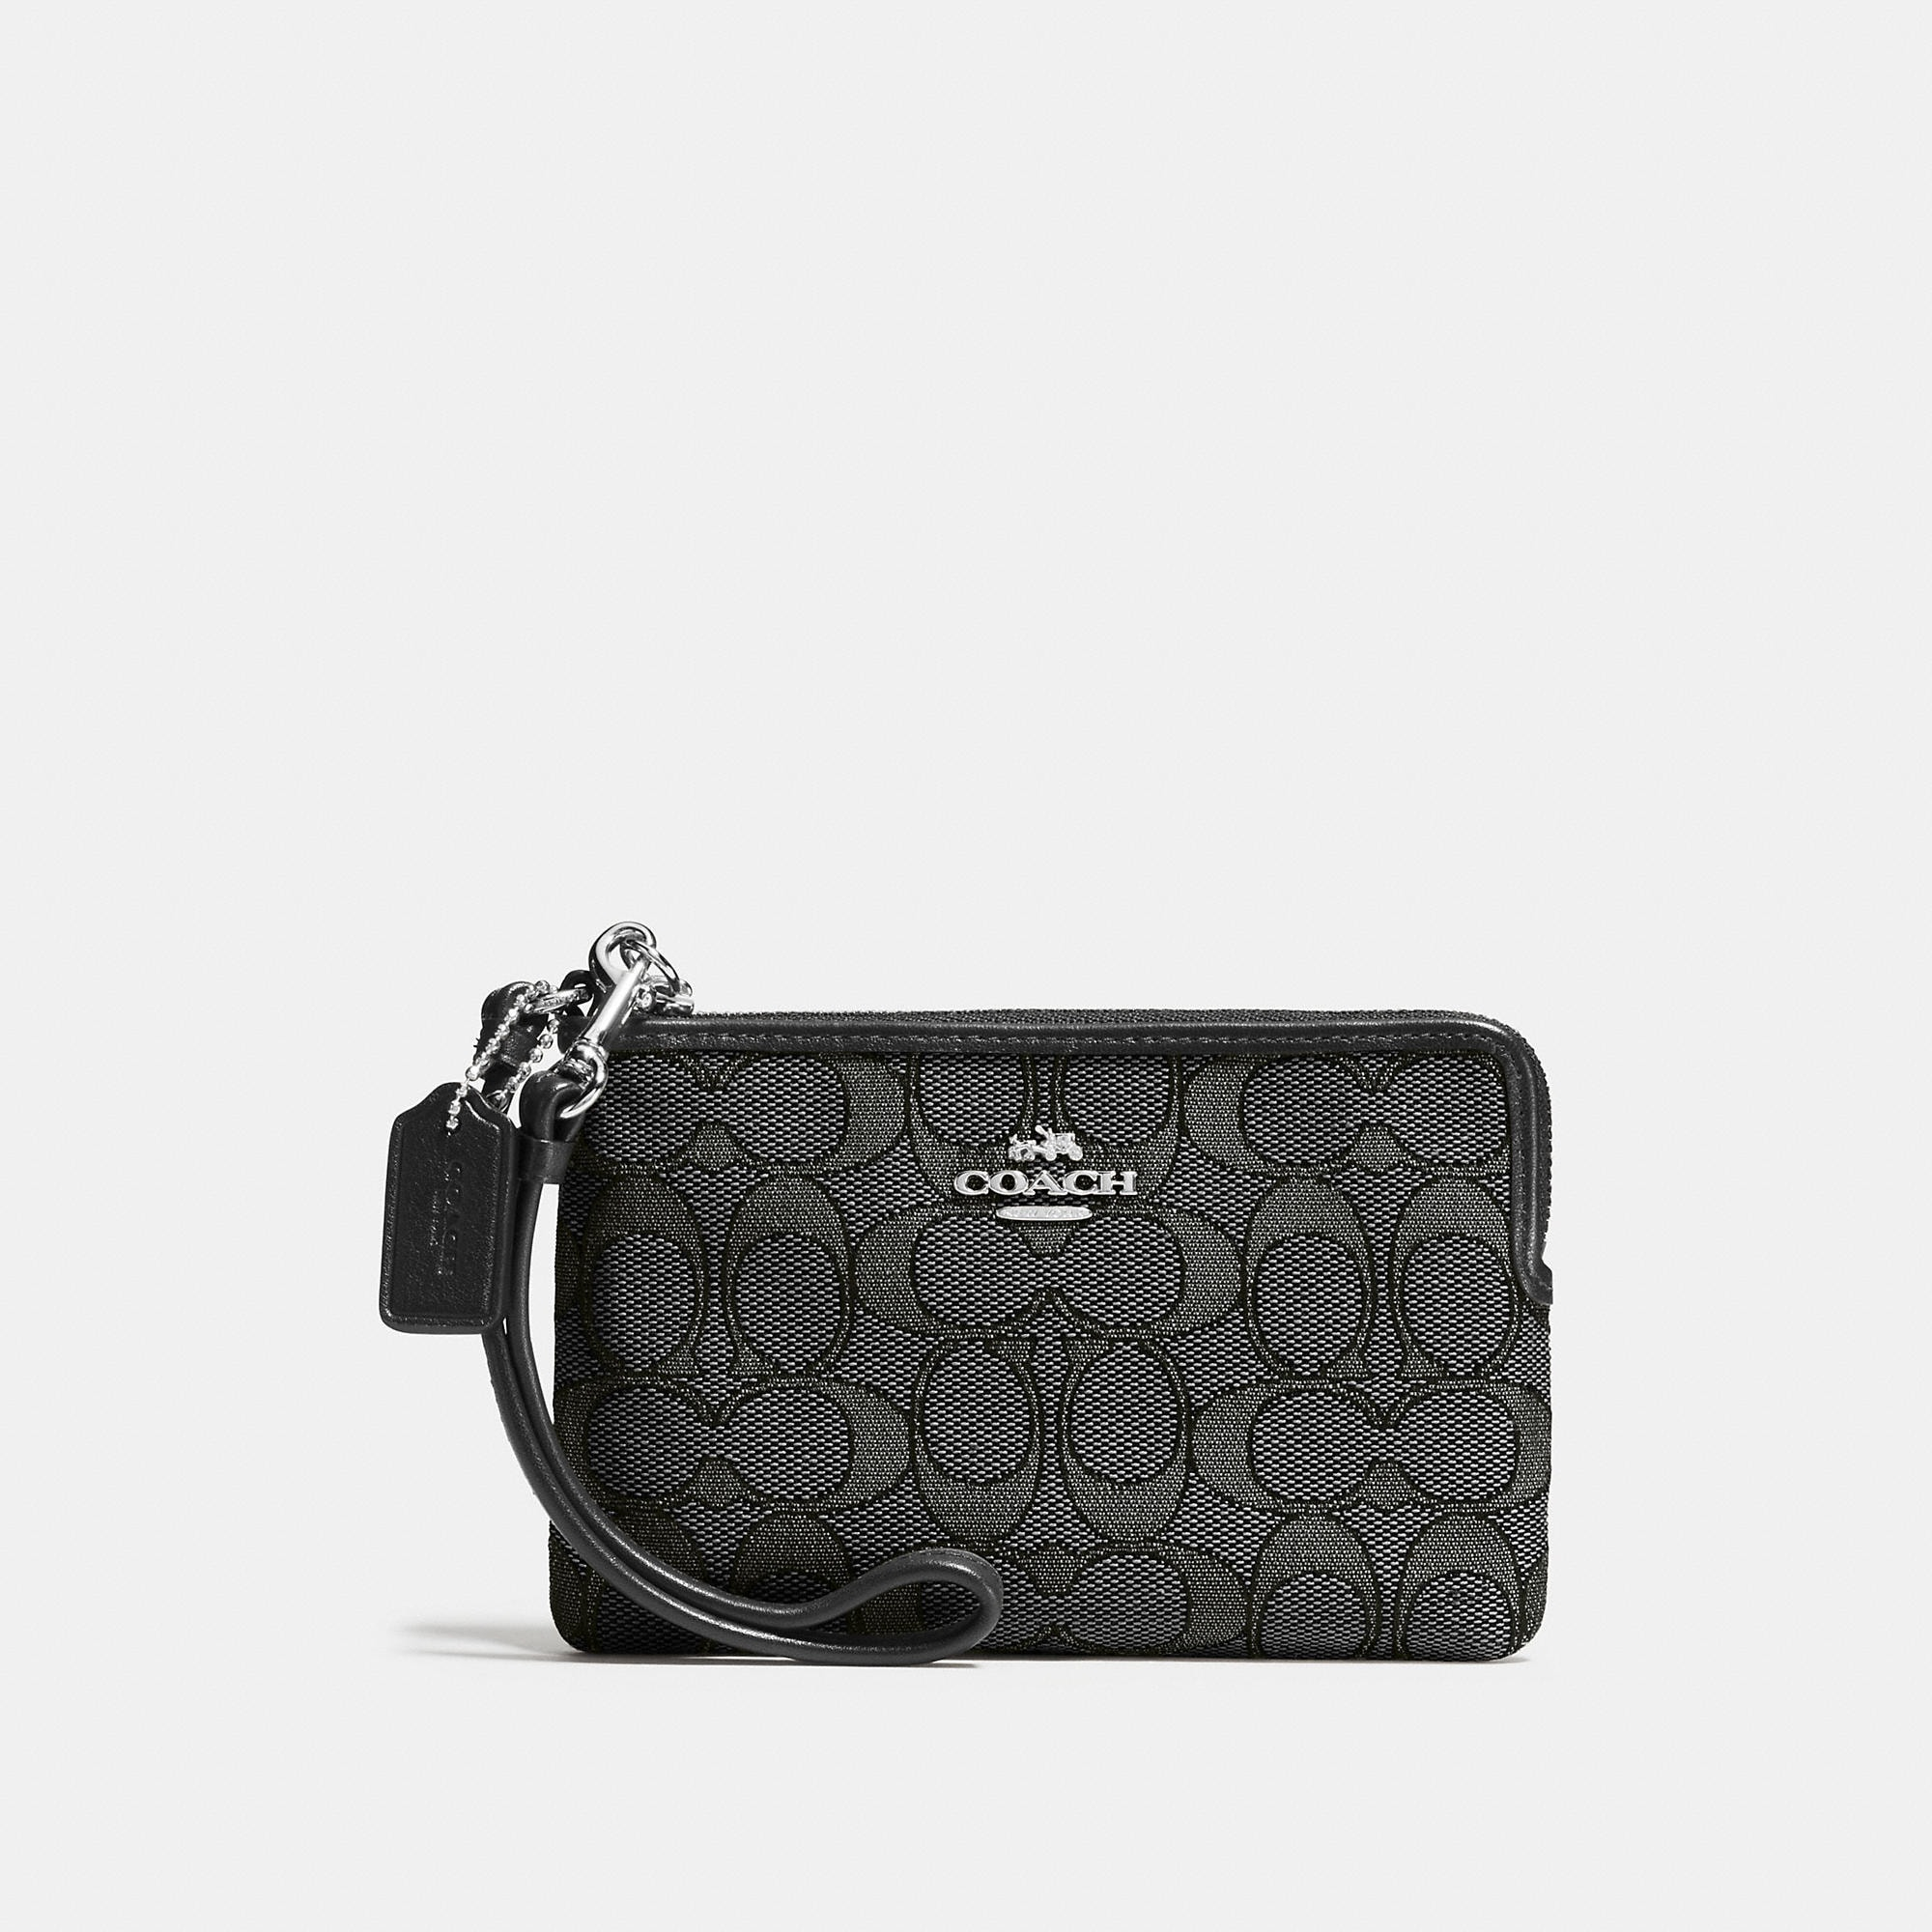 Coach Corner Zip Wristlet In Signature Fabric